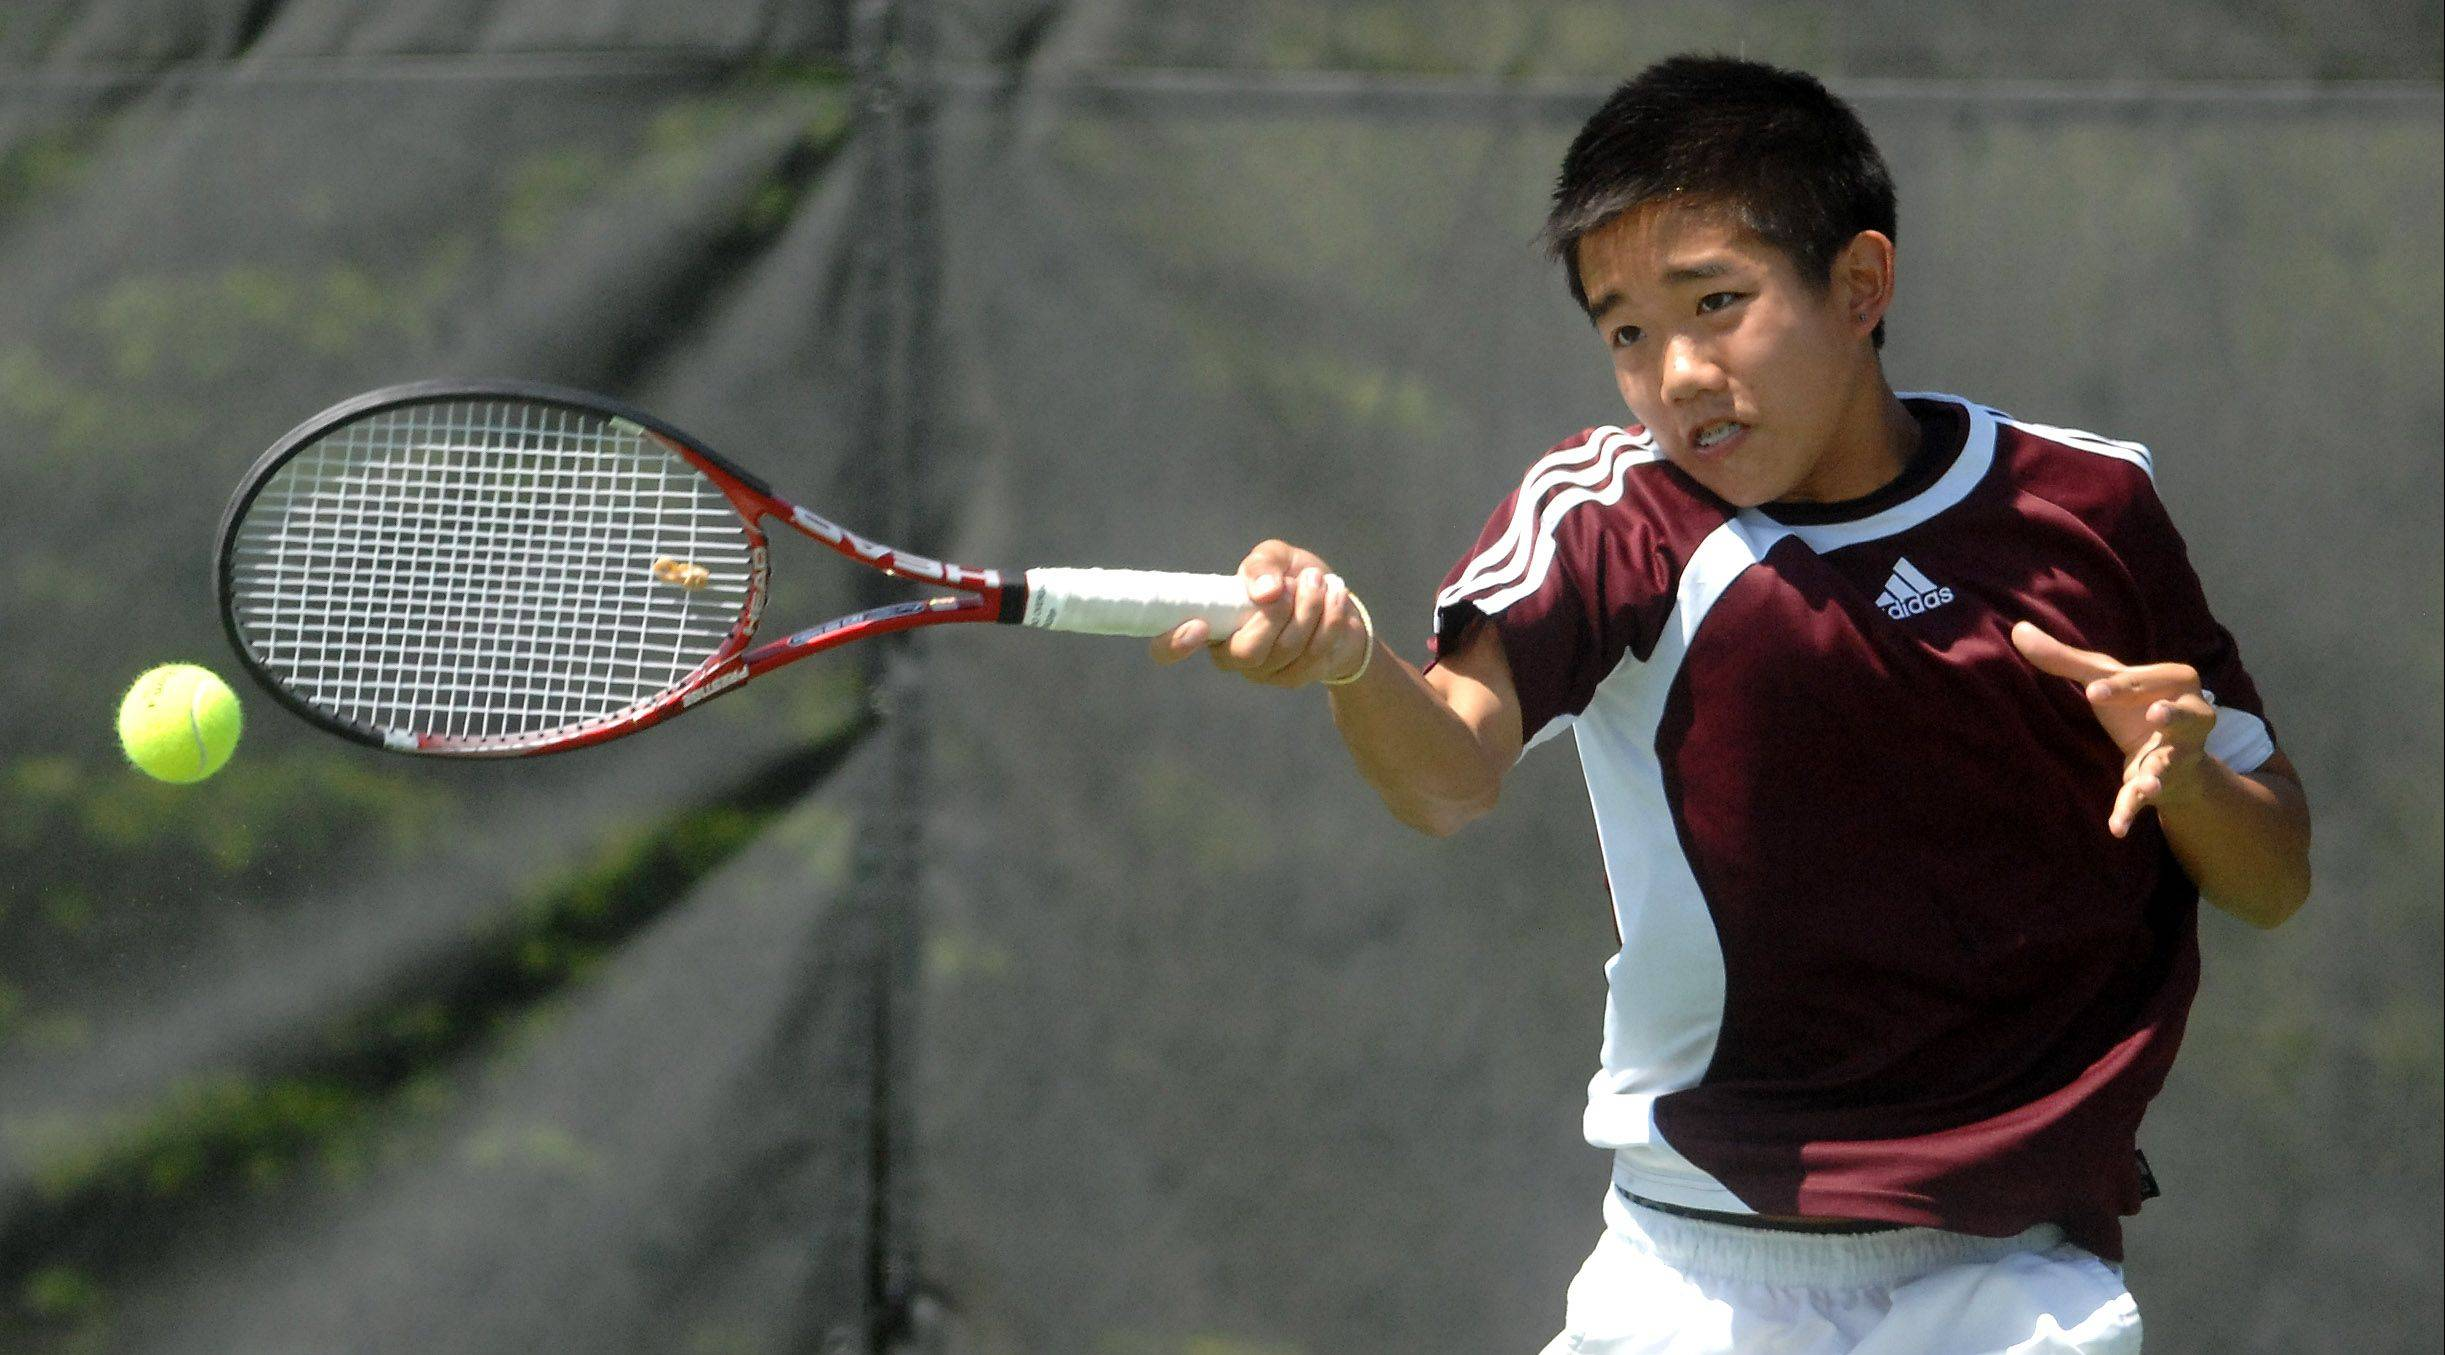 Elgin's Eric Chai returns serve against St. Charles North during the Upstate Eight River Division tournament last season. Chai is a returning state qualifier.